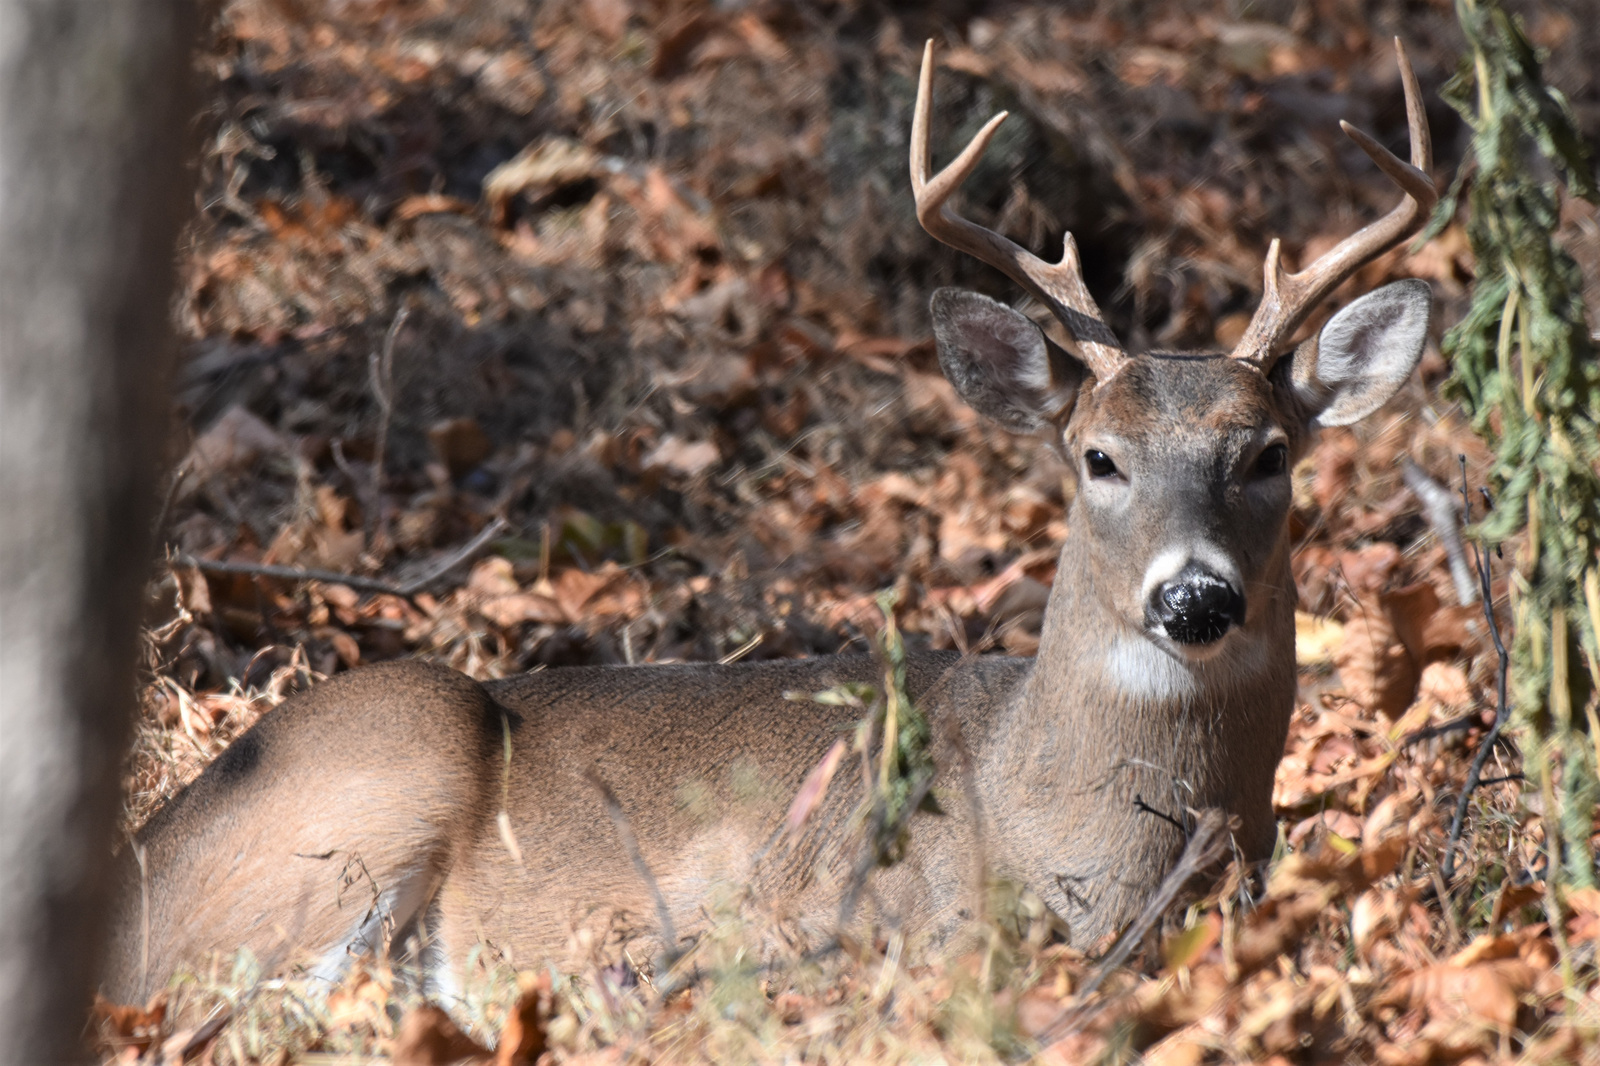 November 17, 2019 - Buck in Bent Tree